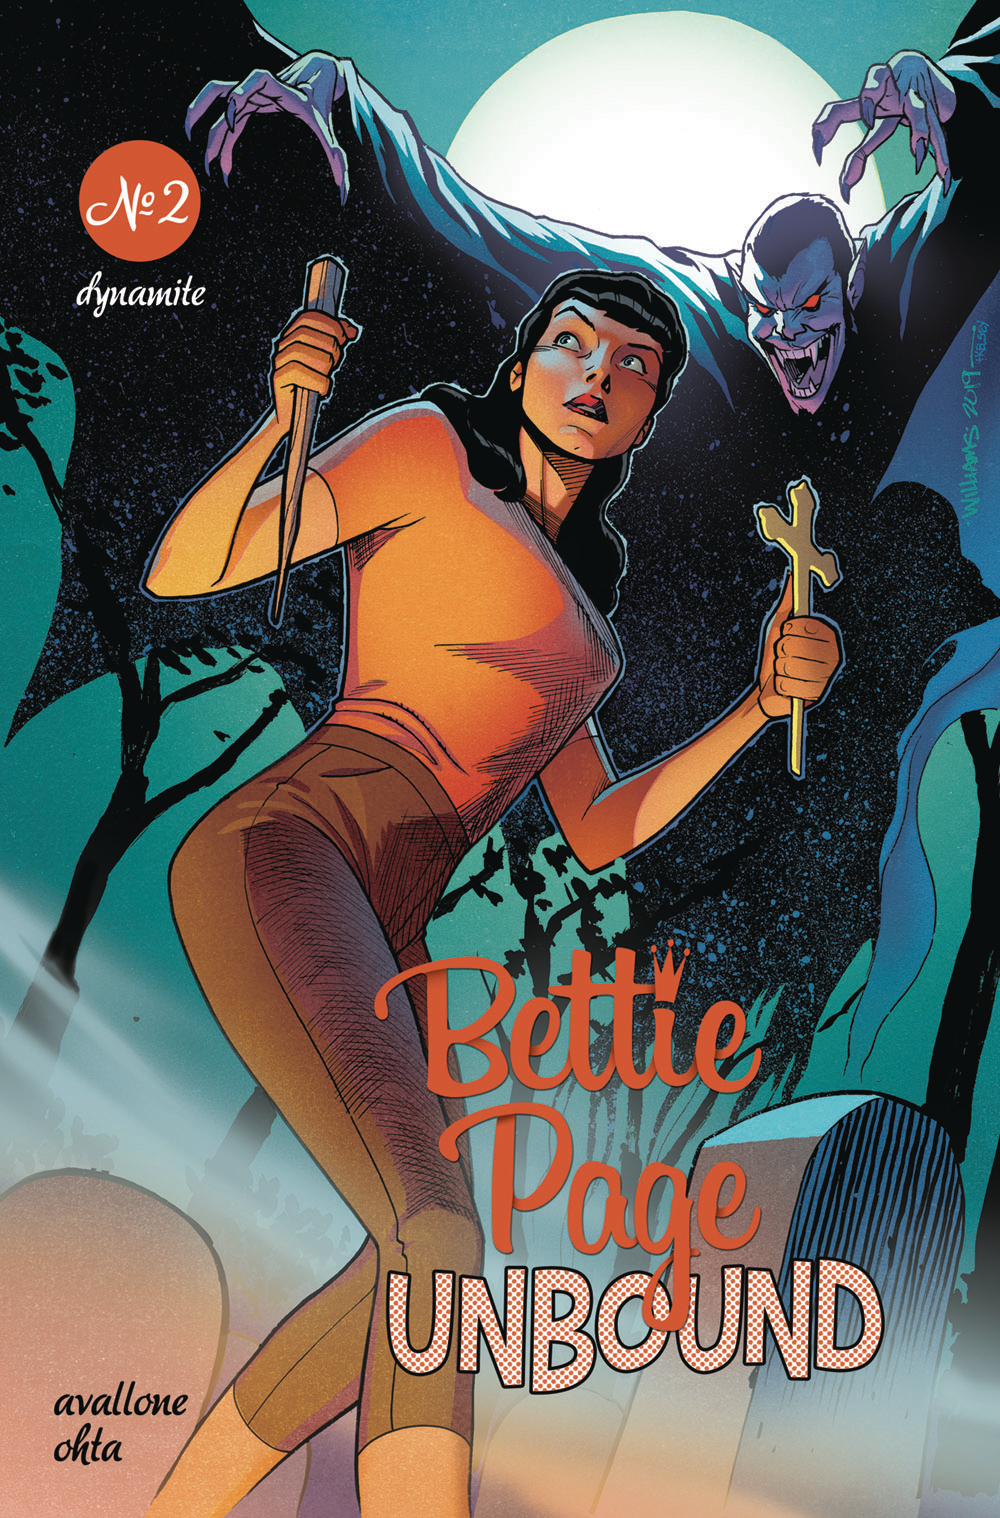 BETTIE PAGE UNBOUND #2 CVR C WILLIAMS